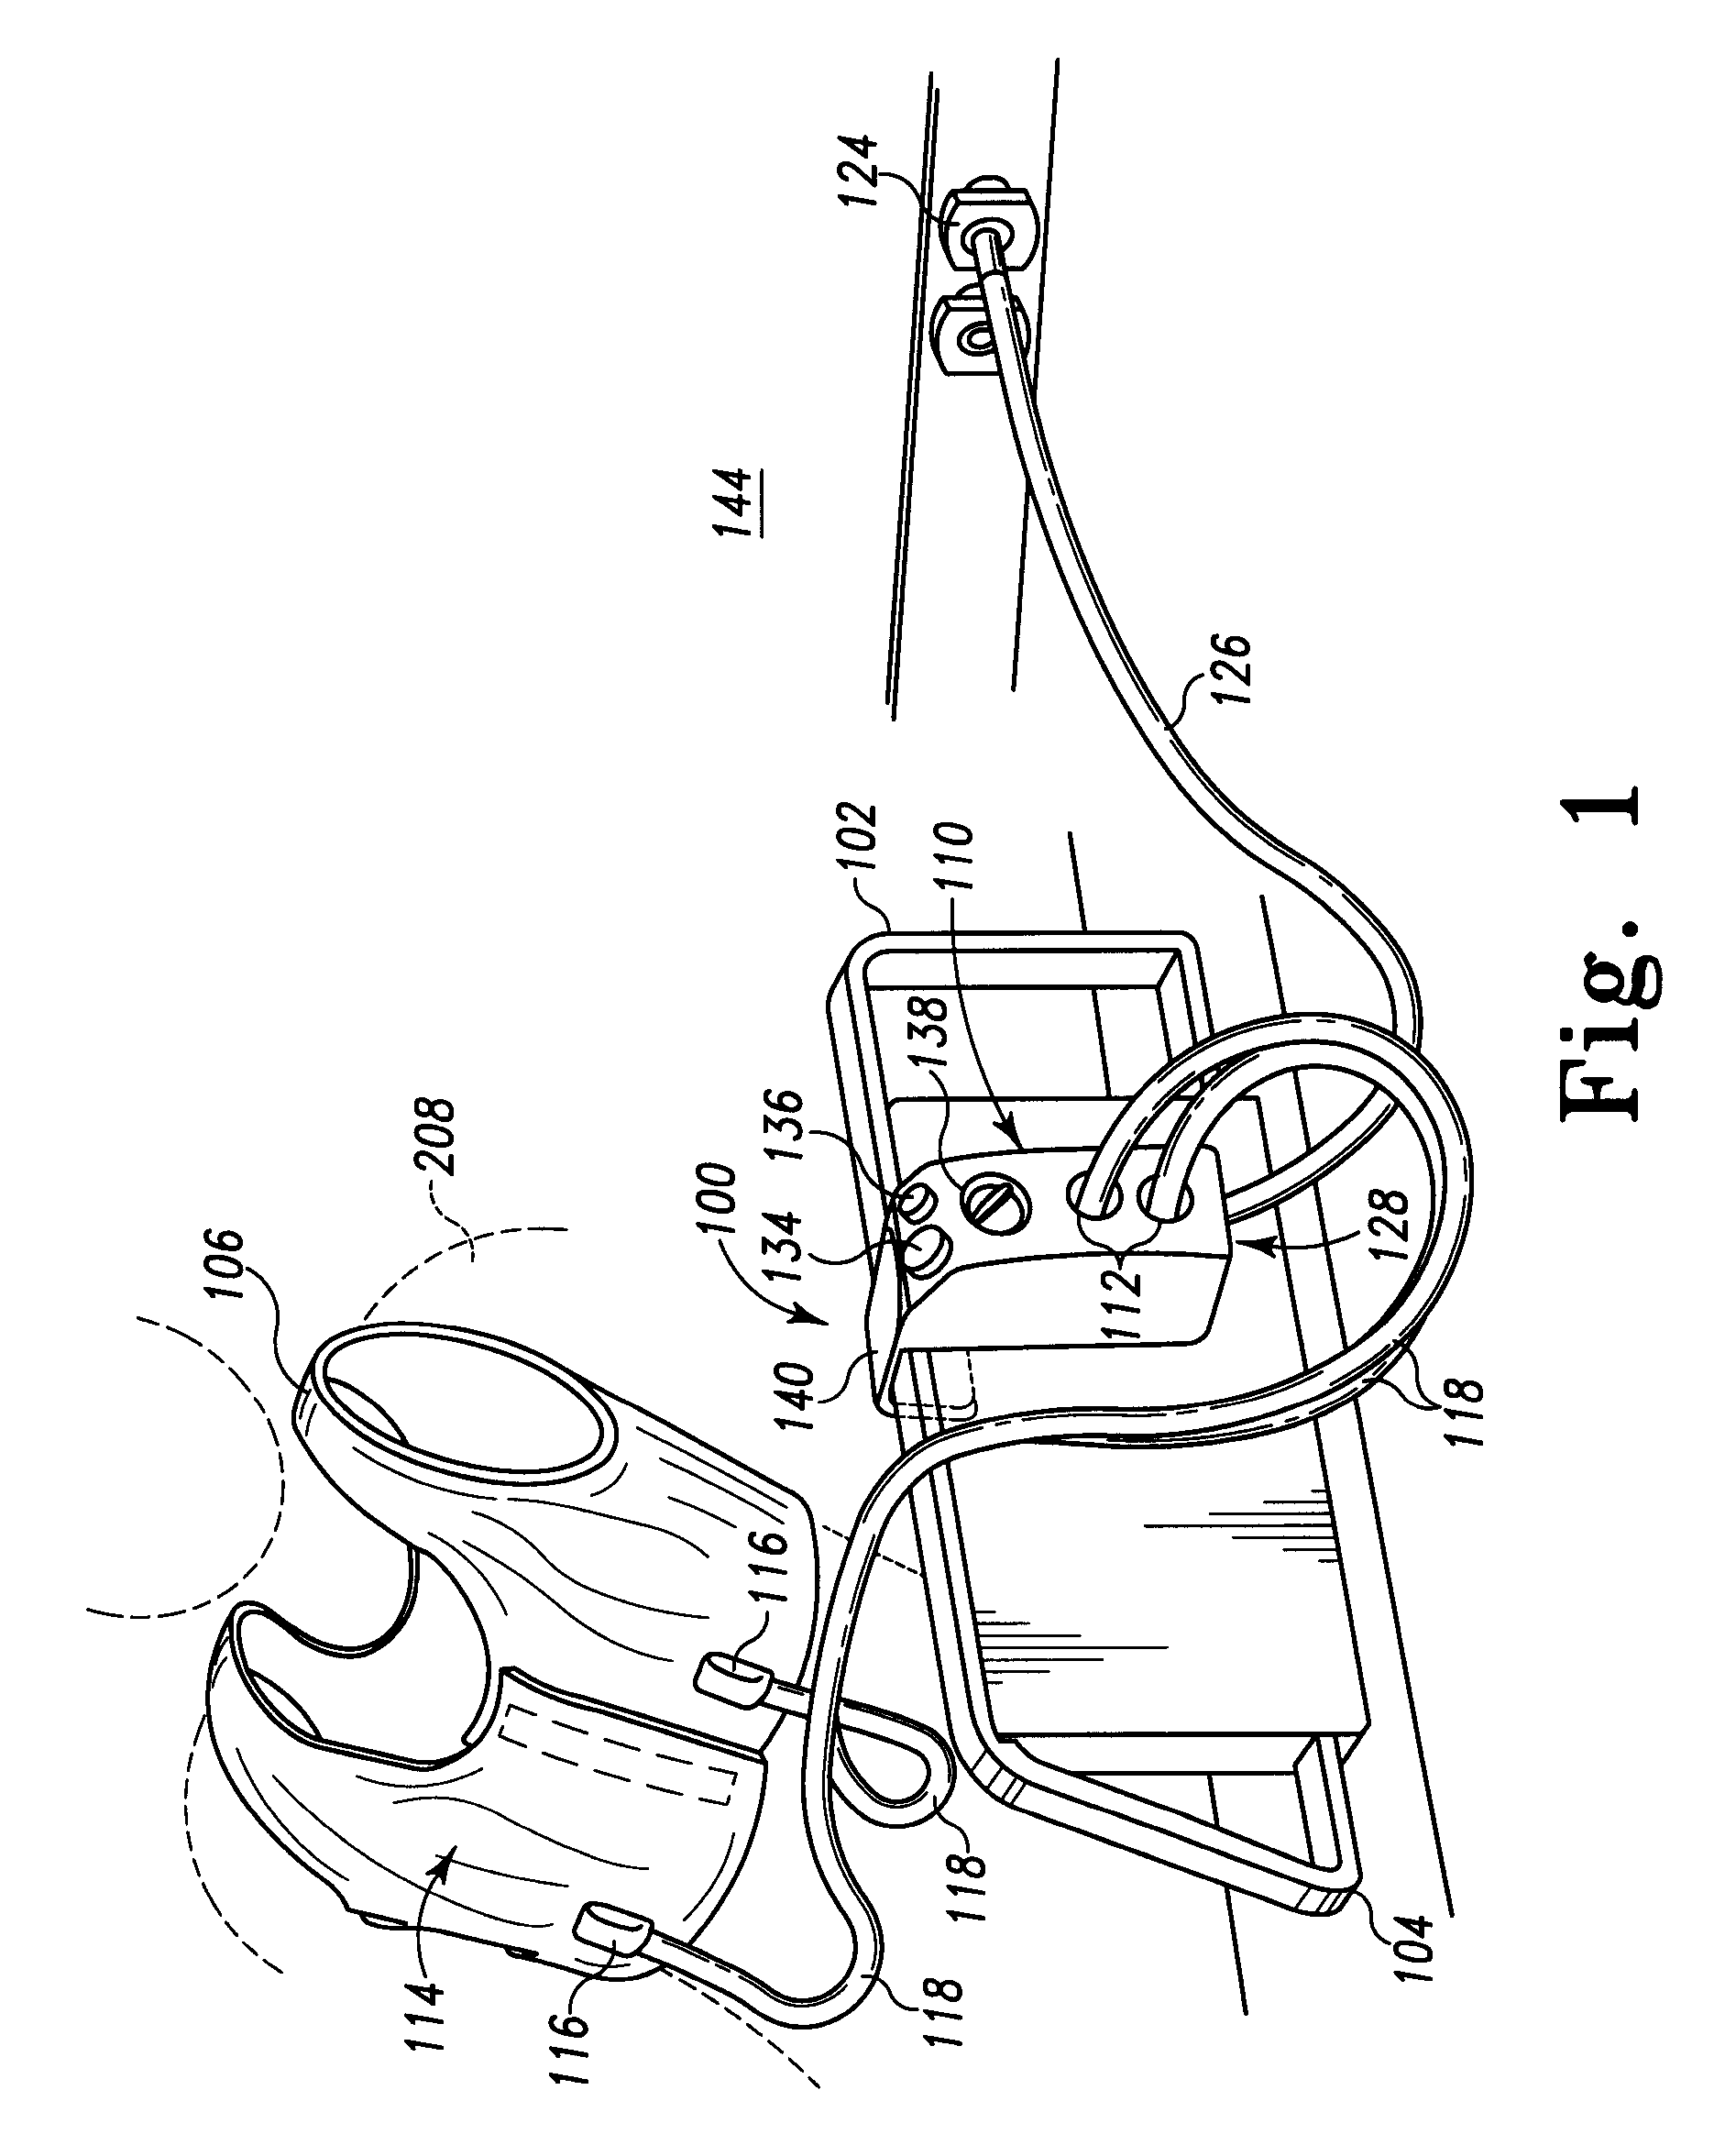 Ford Pinto Engine Diagram